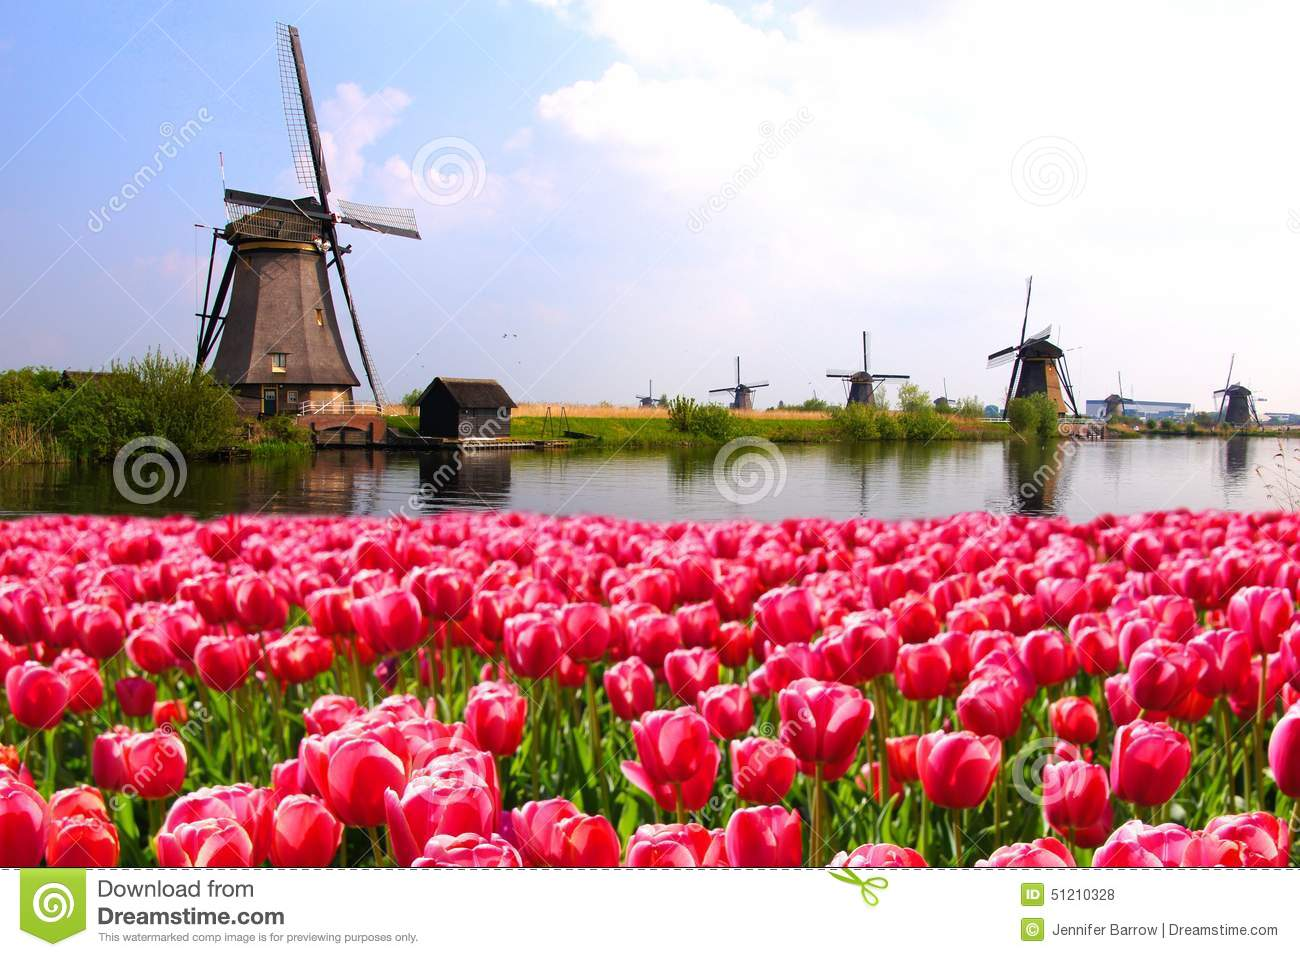 Tulips with Dutch windmills and canal